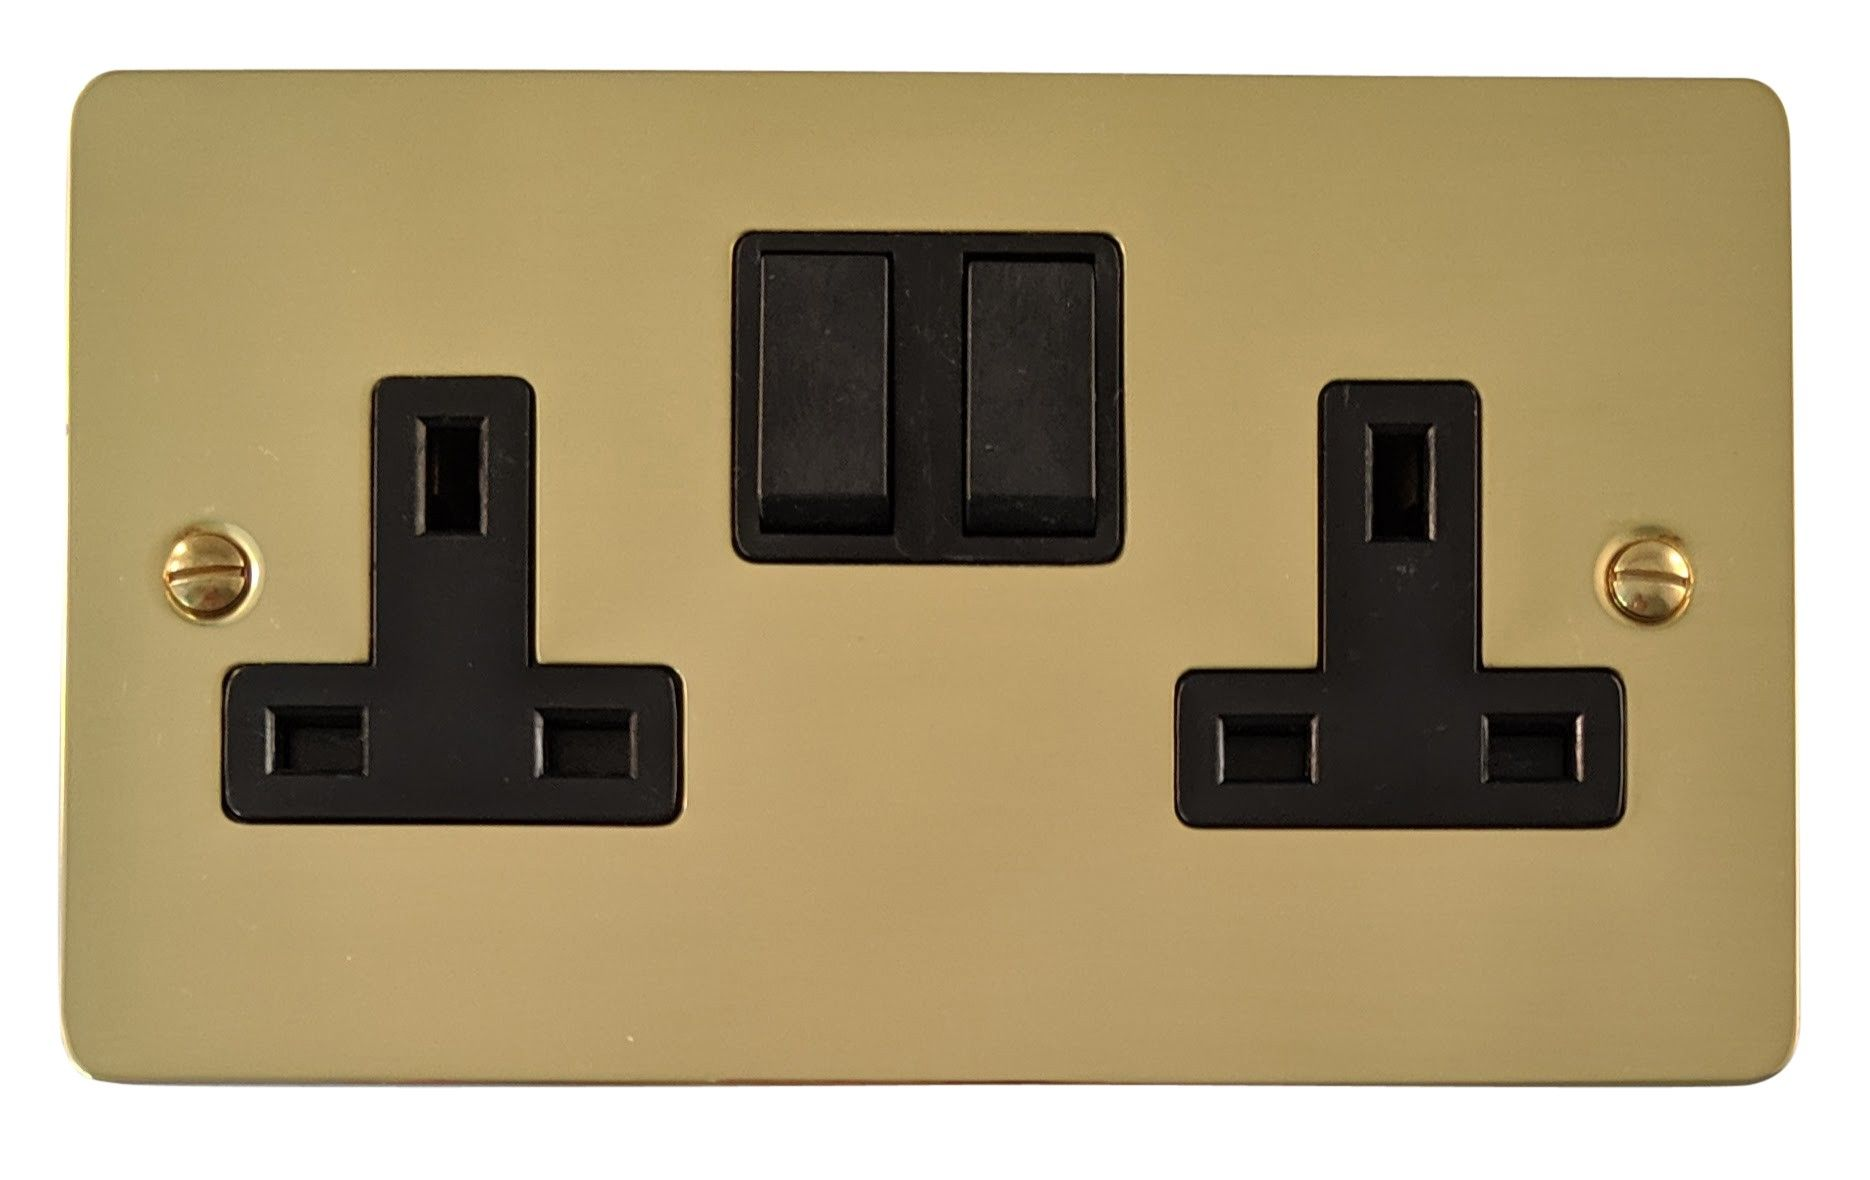 G&H FB10B Flat Plate Polished Brass 2 Gang Double 13A Switched Plug Socket